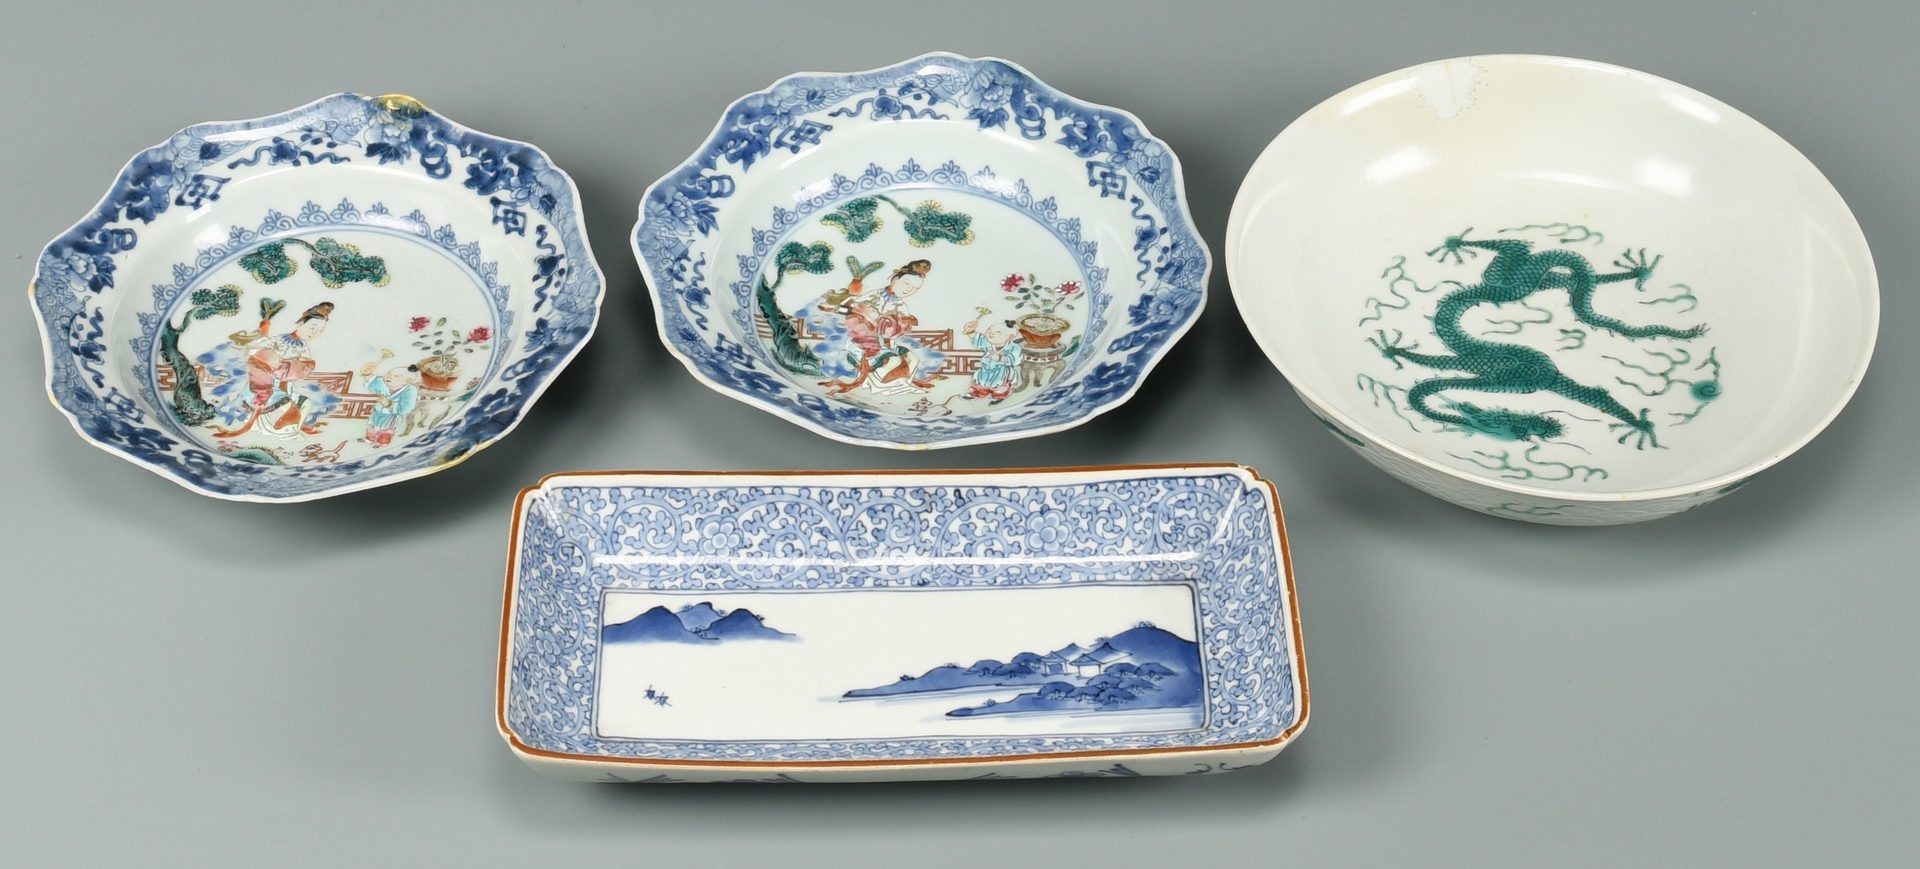 Lot 339: 11 Assorted Chinese Porcelain Items